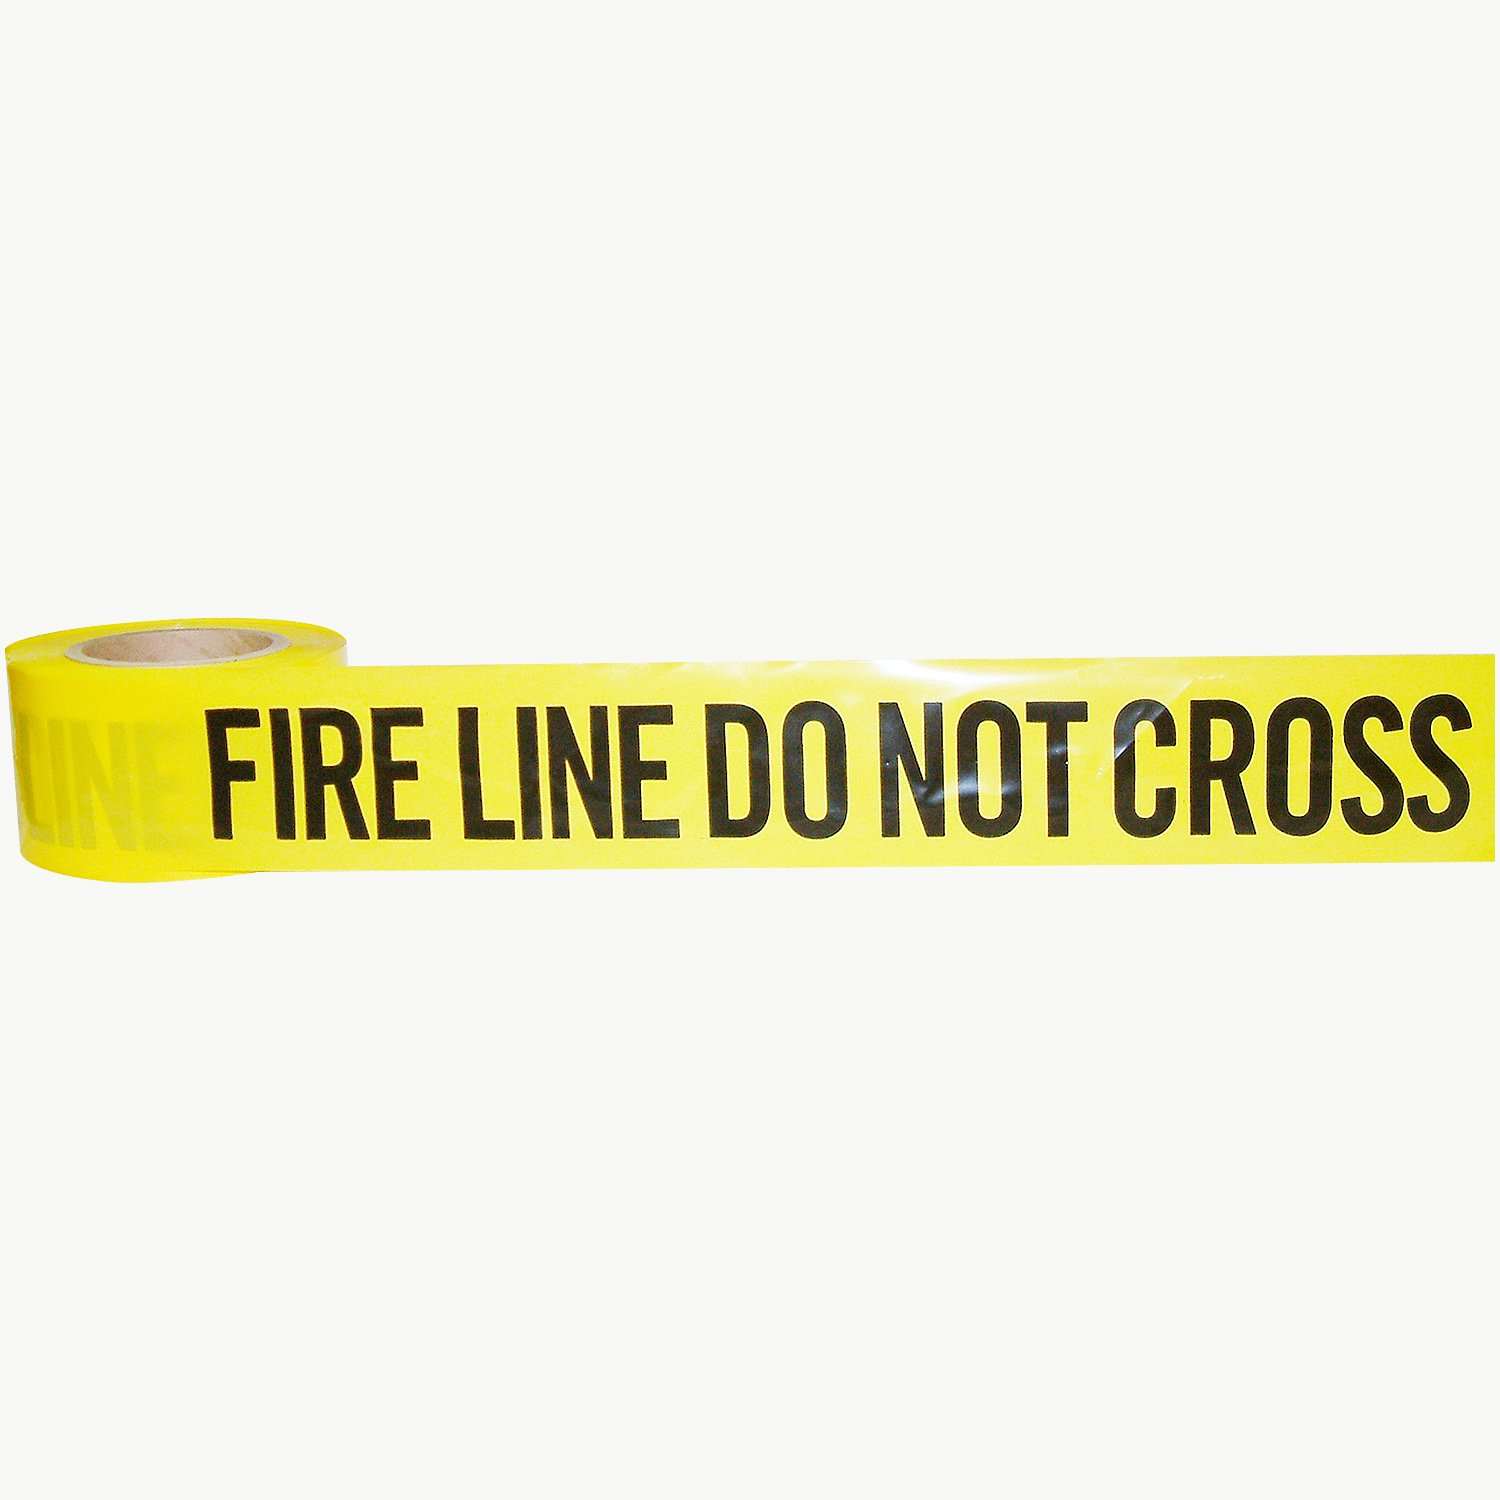 JVCC BR-1 Barricade Tape: 3 in. x 1000 ft. (Yellow with Black ''FIRE LINE DO NOT CROSS'' printing) by J.V. Converting